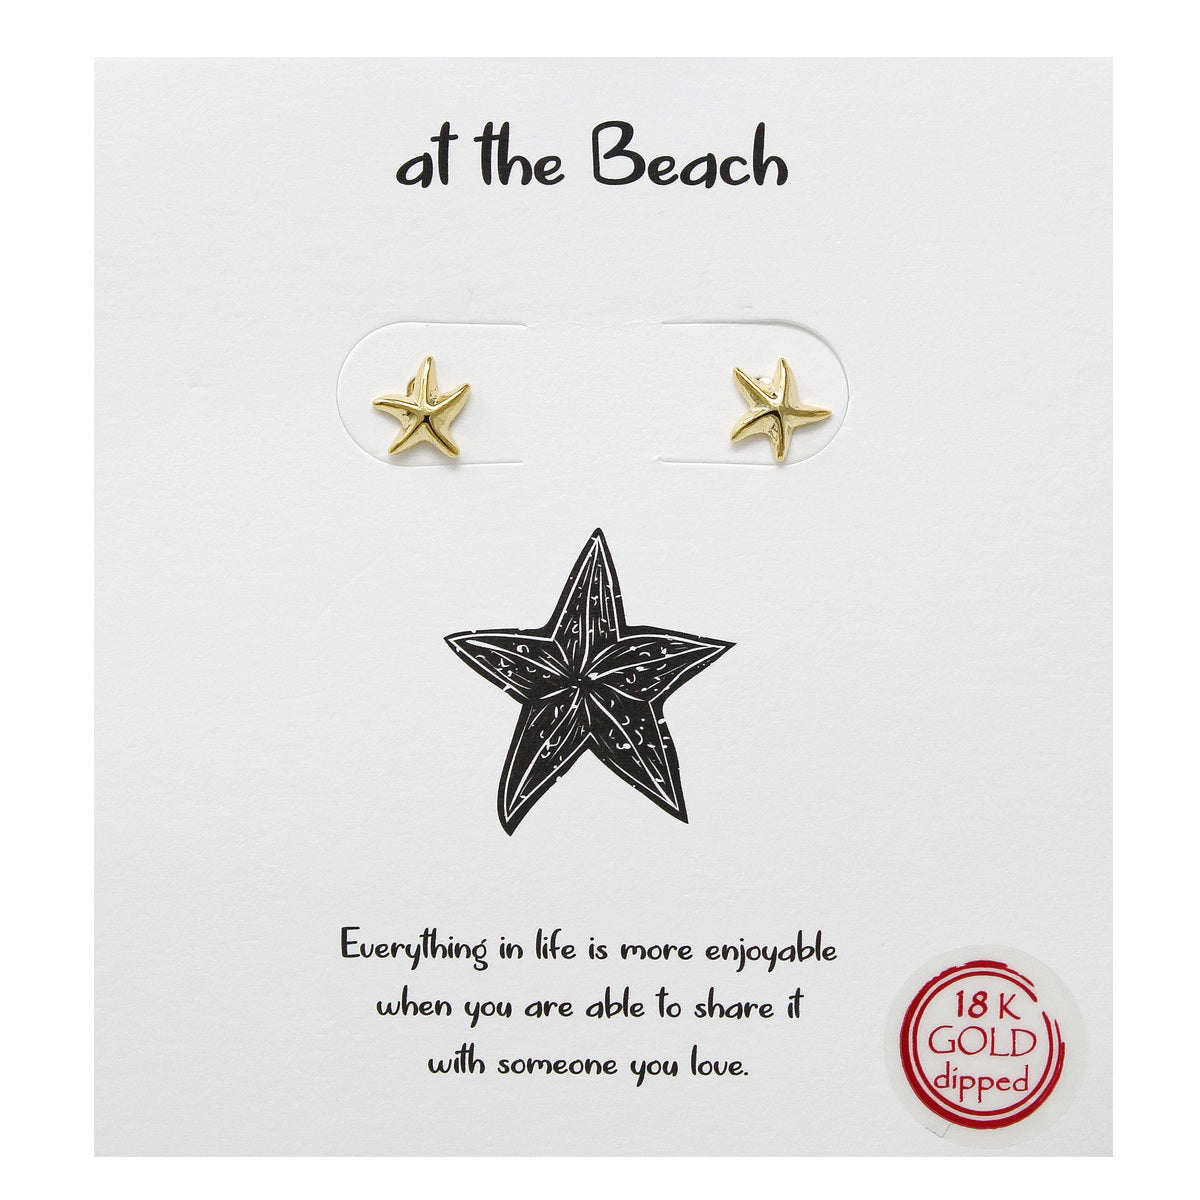 Tell Your Story: At The Beach Starfish Stud Earrings